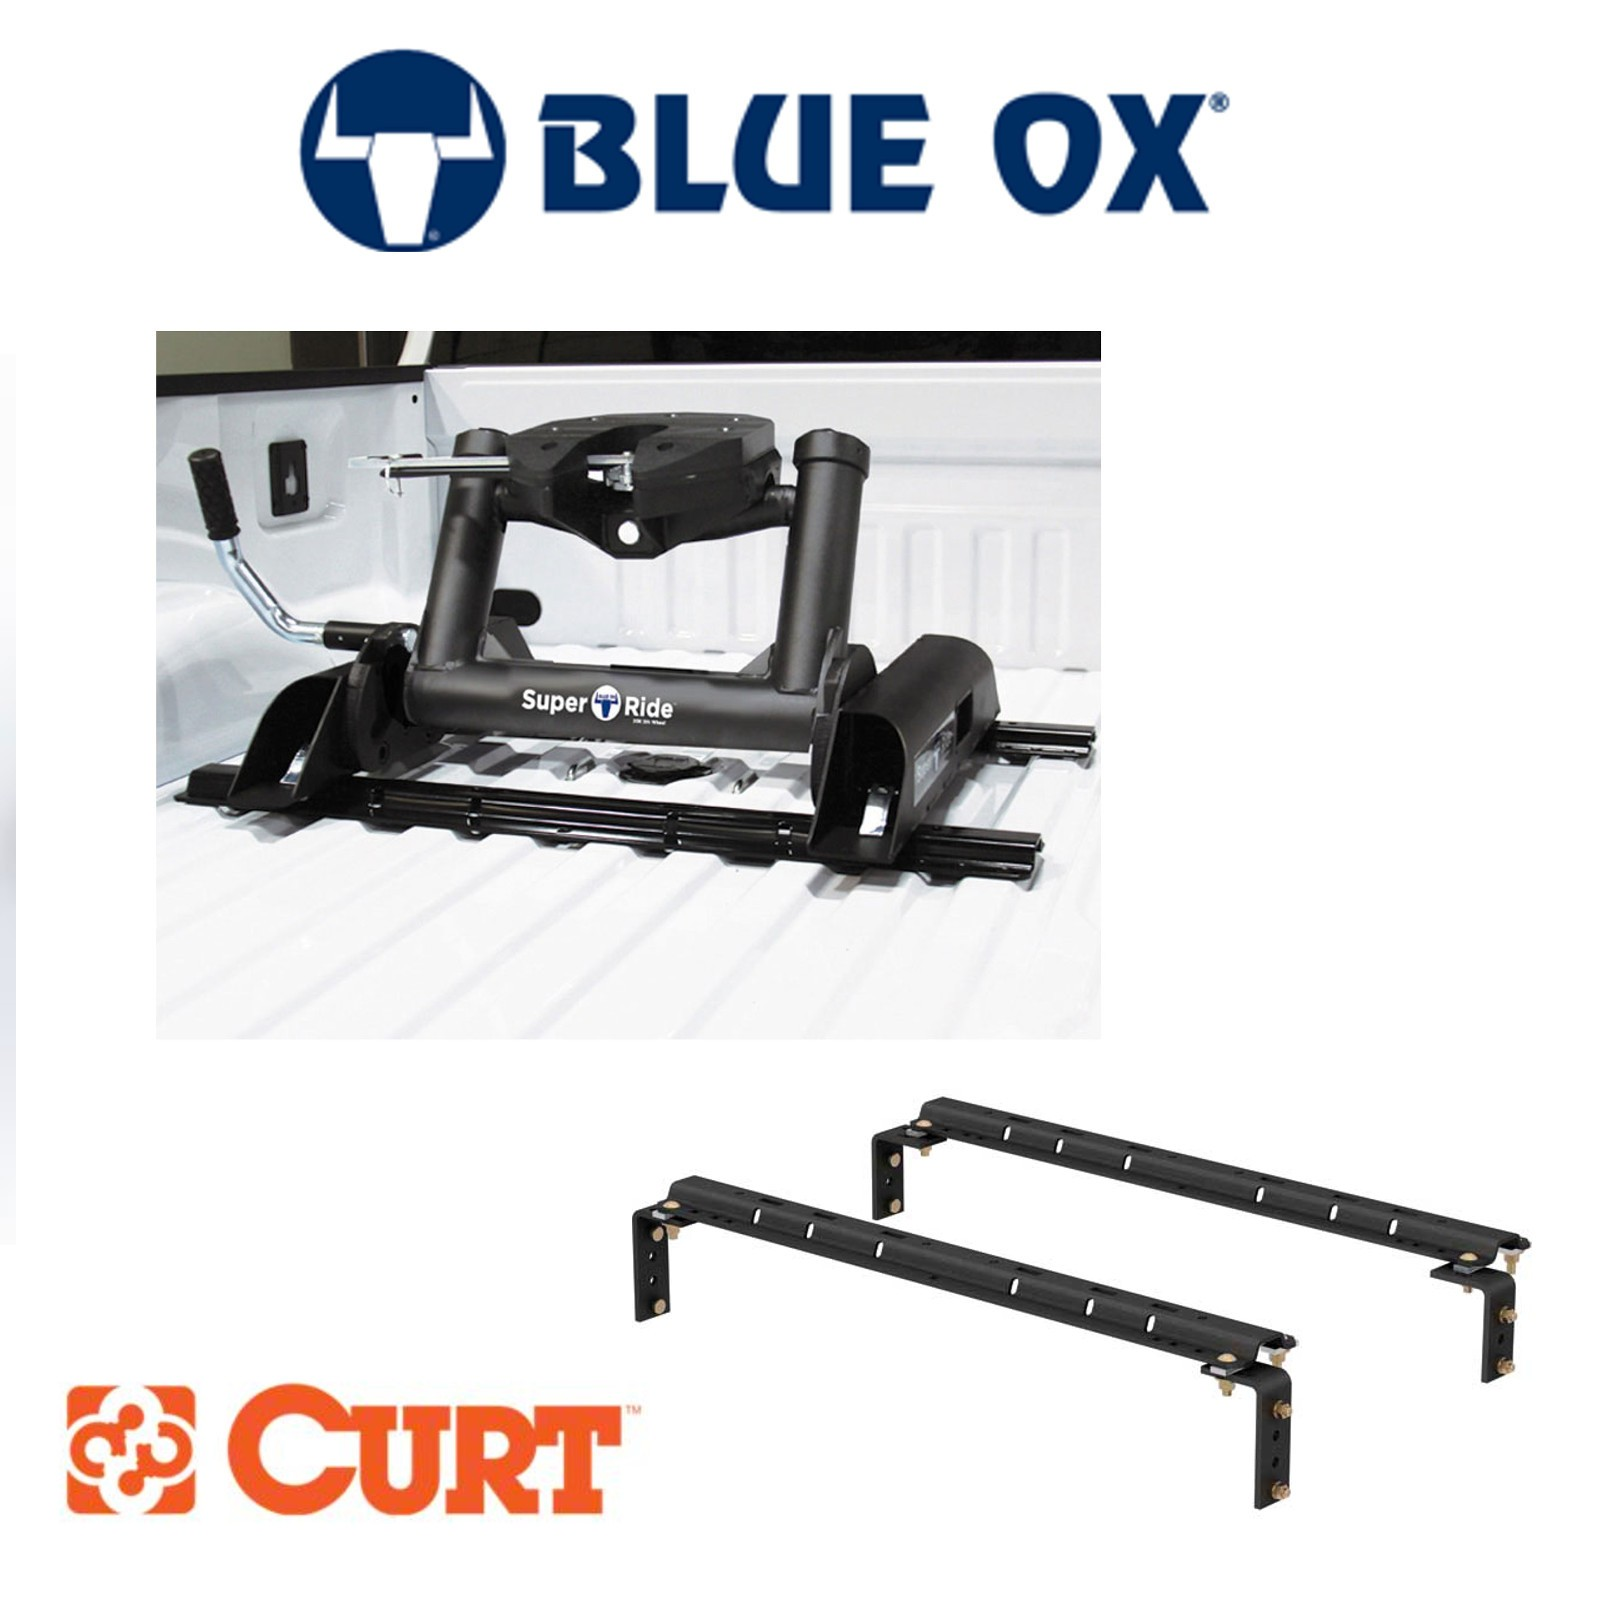 Details About Blue Ox Superride 20k 5th Wheel Hitch Slider Curt Universal Bed Rail Kit Combo